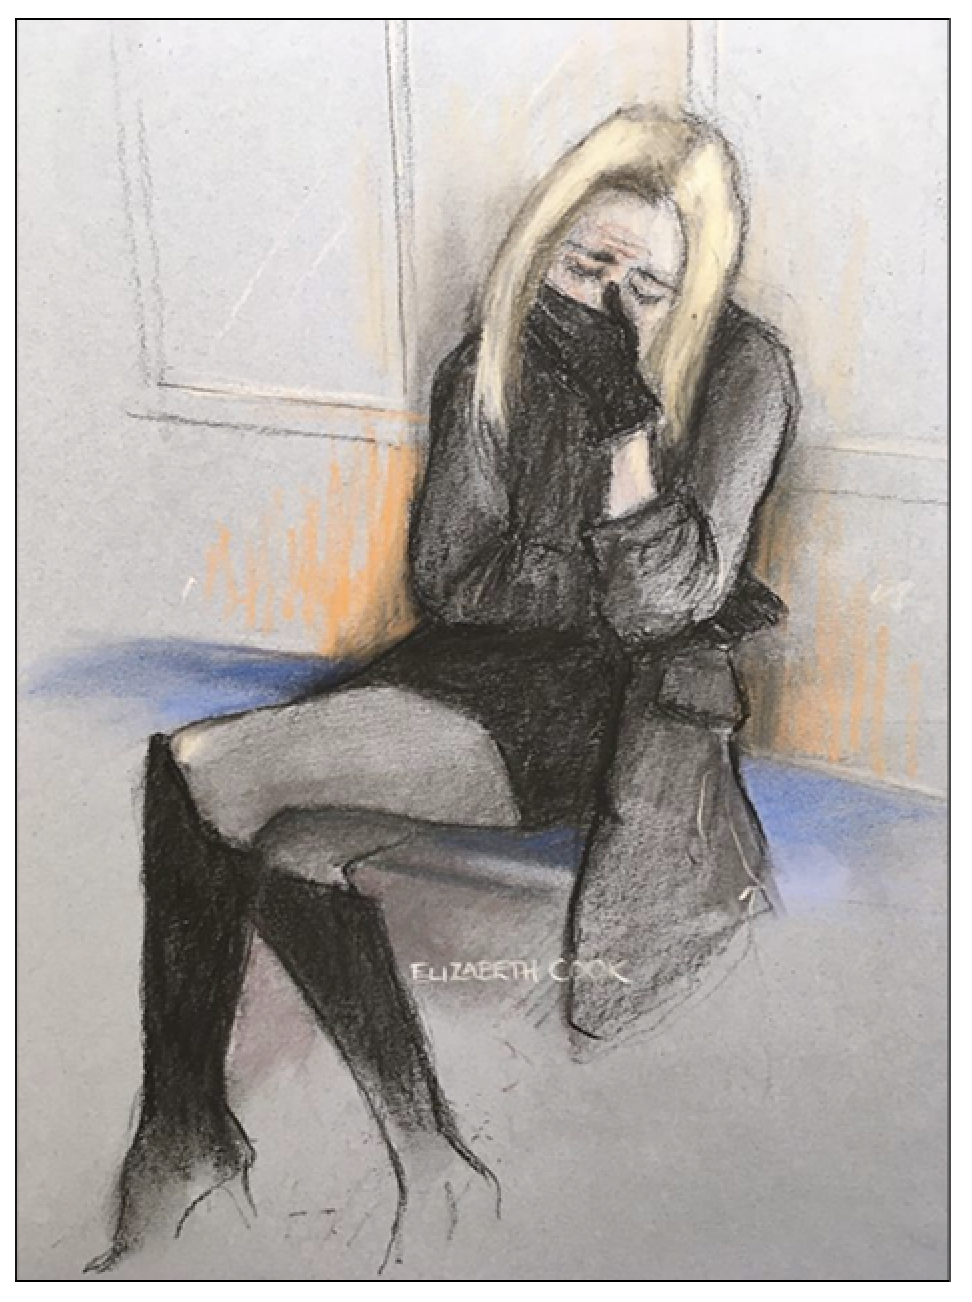 Anguish:  Court artist Elizabeth Cook captures Ms Flack's emotional state during her appearance at Highbury Magistrates' Court on December 23, 2019 (c) Elizabeth Cook/ Creative Commons